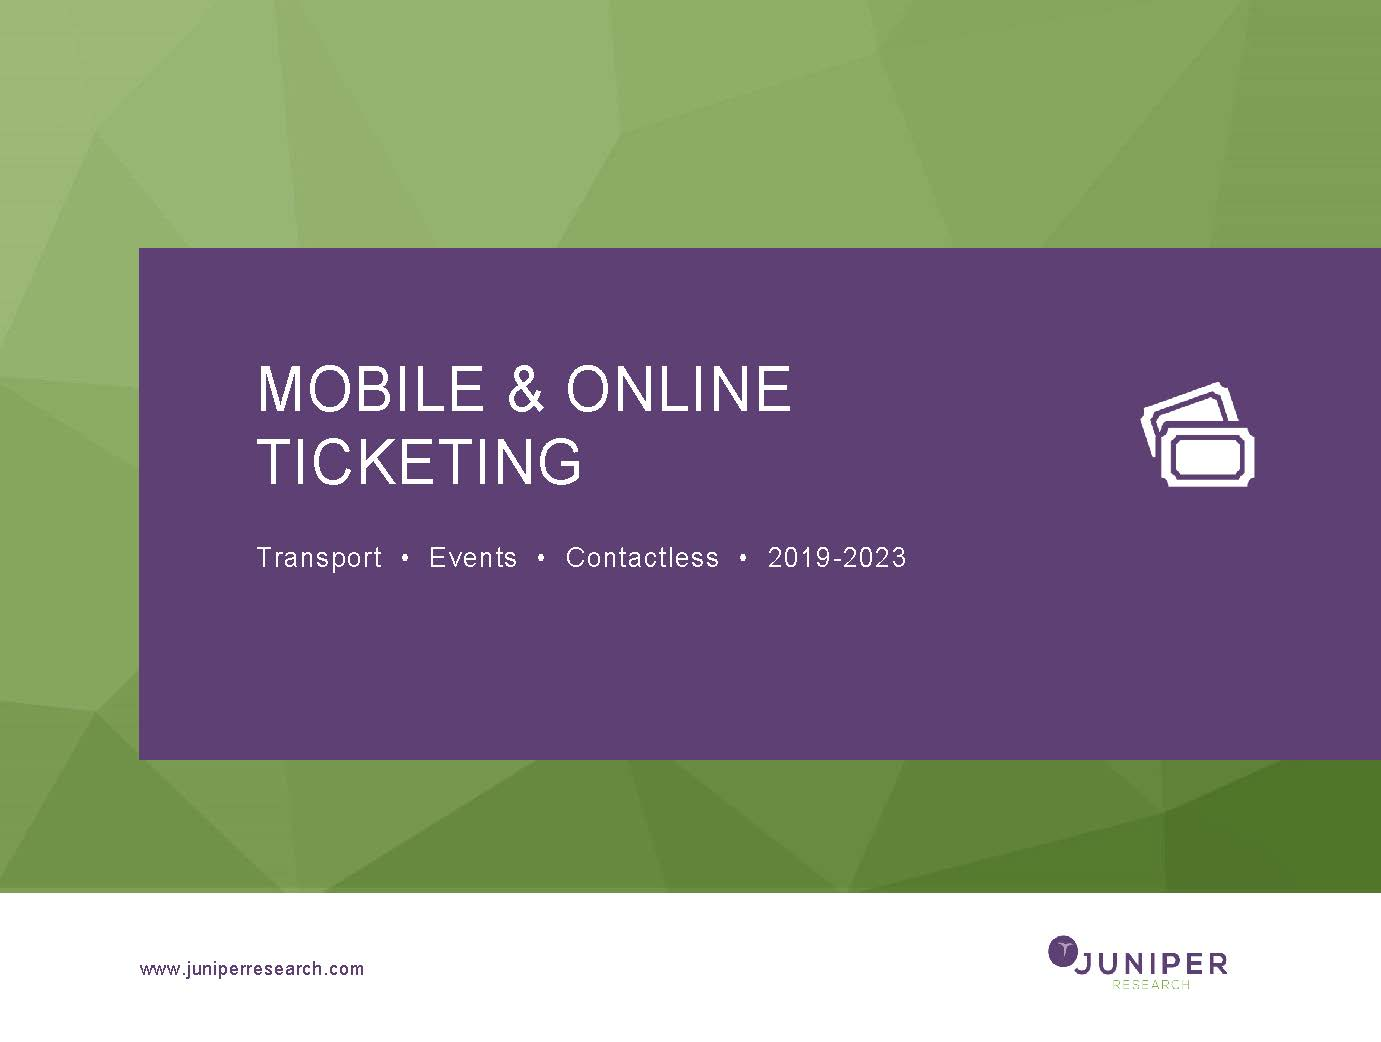 Mobile & Online Ticketing